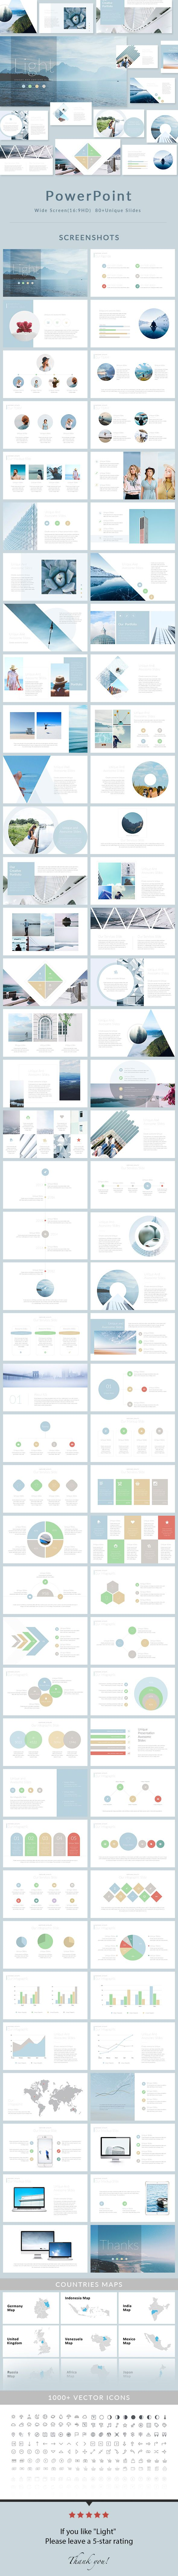 Light powerpoint presentation template powerpoint presentation light powerpoint presentation template alramifo Gallery